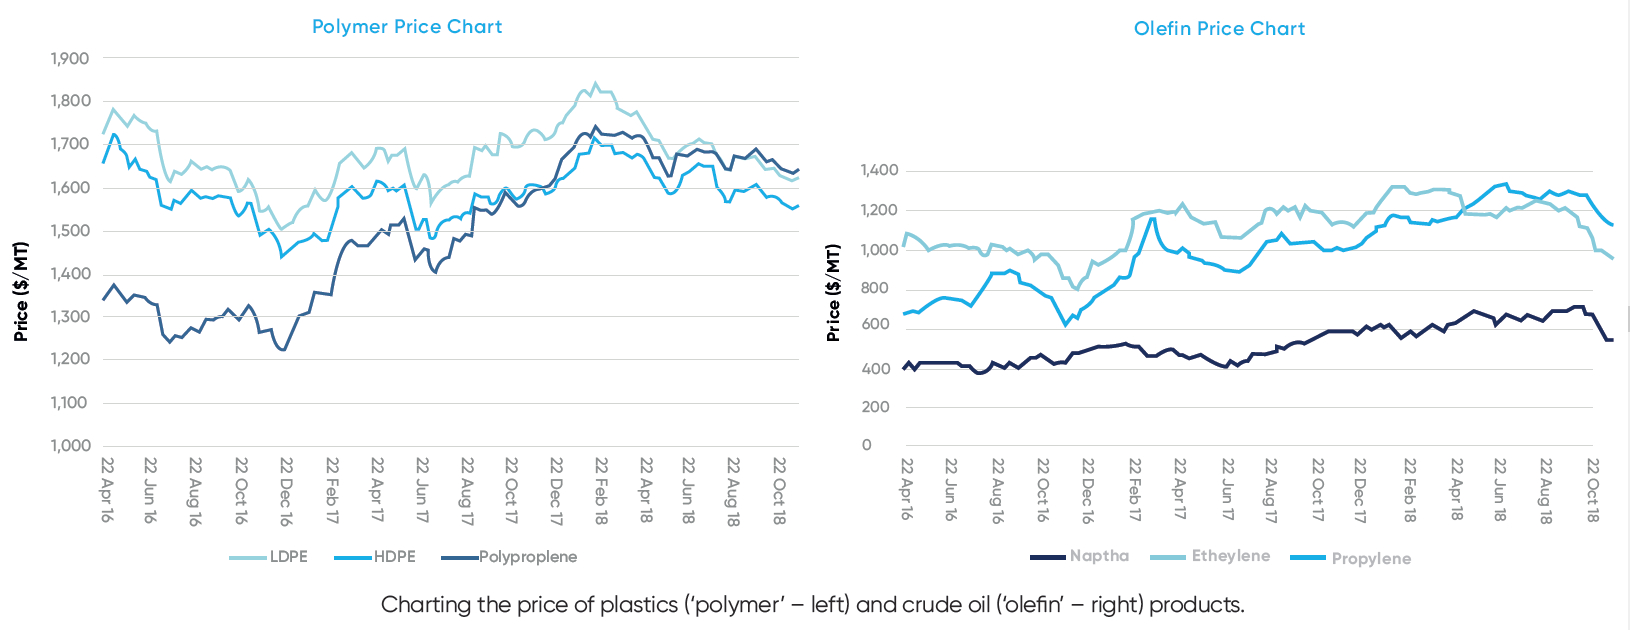 The price of plastic: Taking control of raw material costs - Charting the price of plastics ('polymer' – L) and crude oil ('olefin' – R) products - Investec - Feb 2019